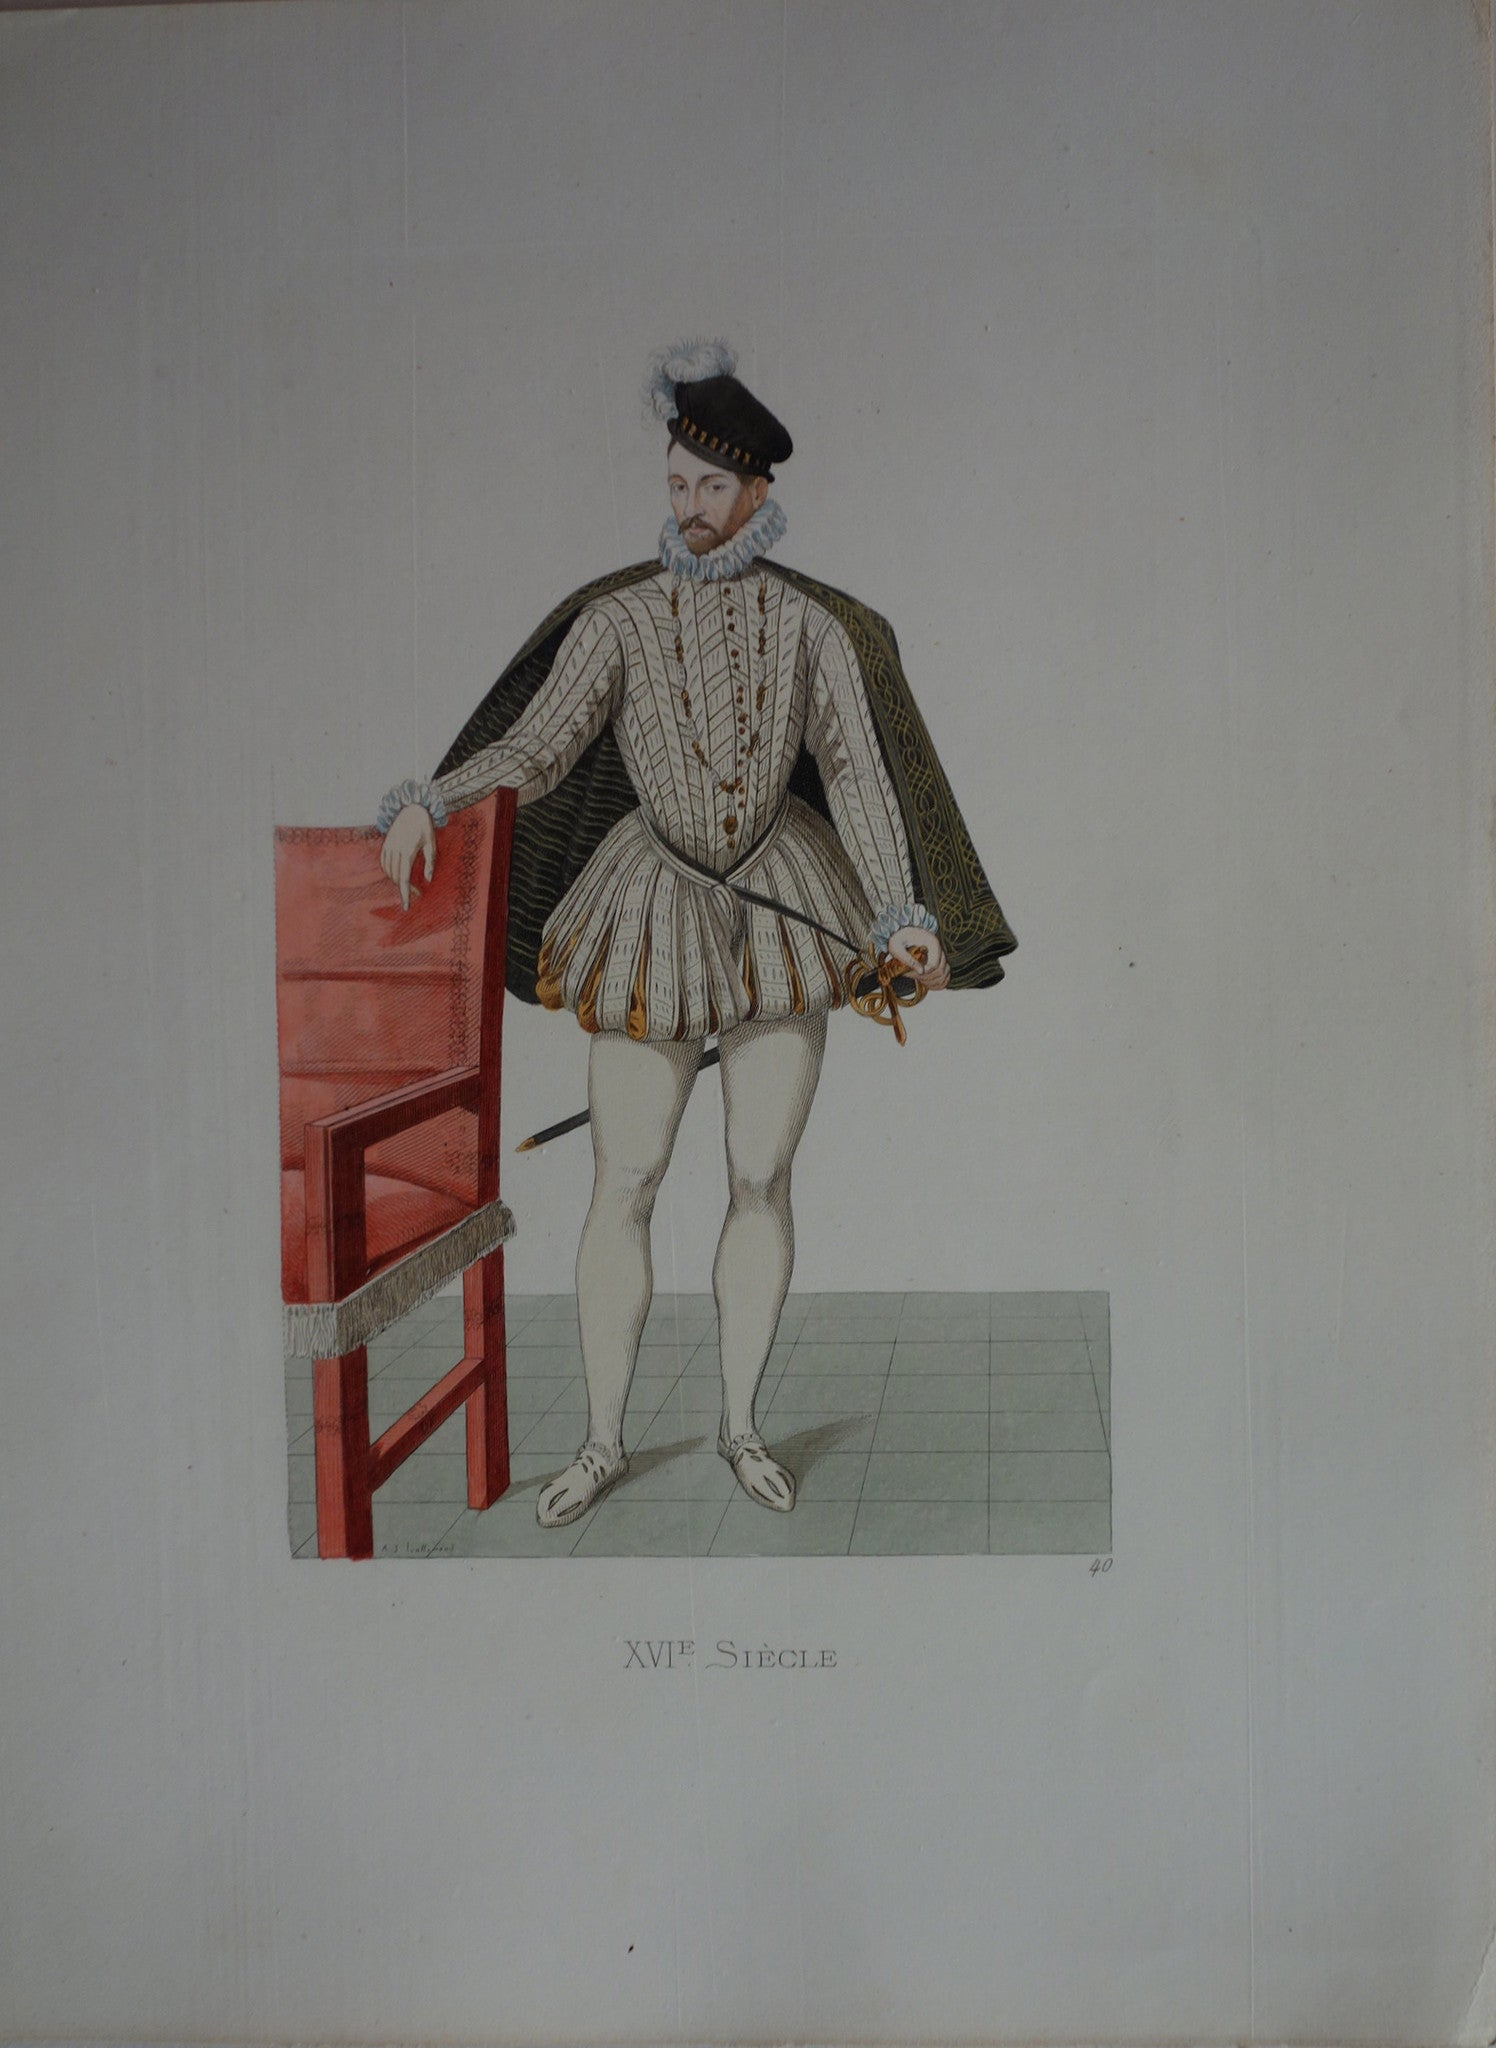 XVI Siecle King Charles IX of France